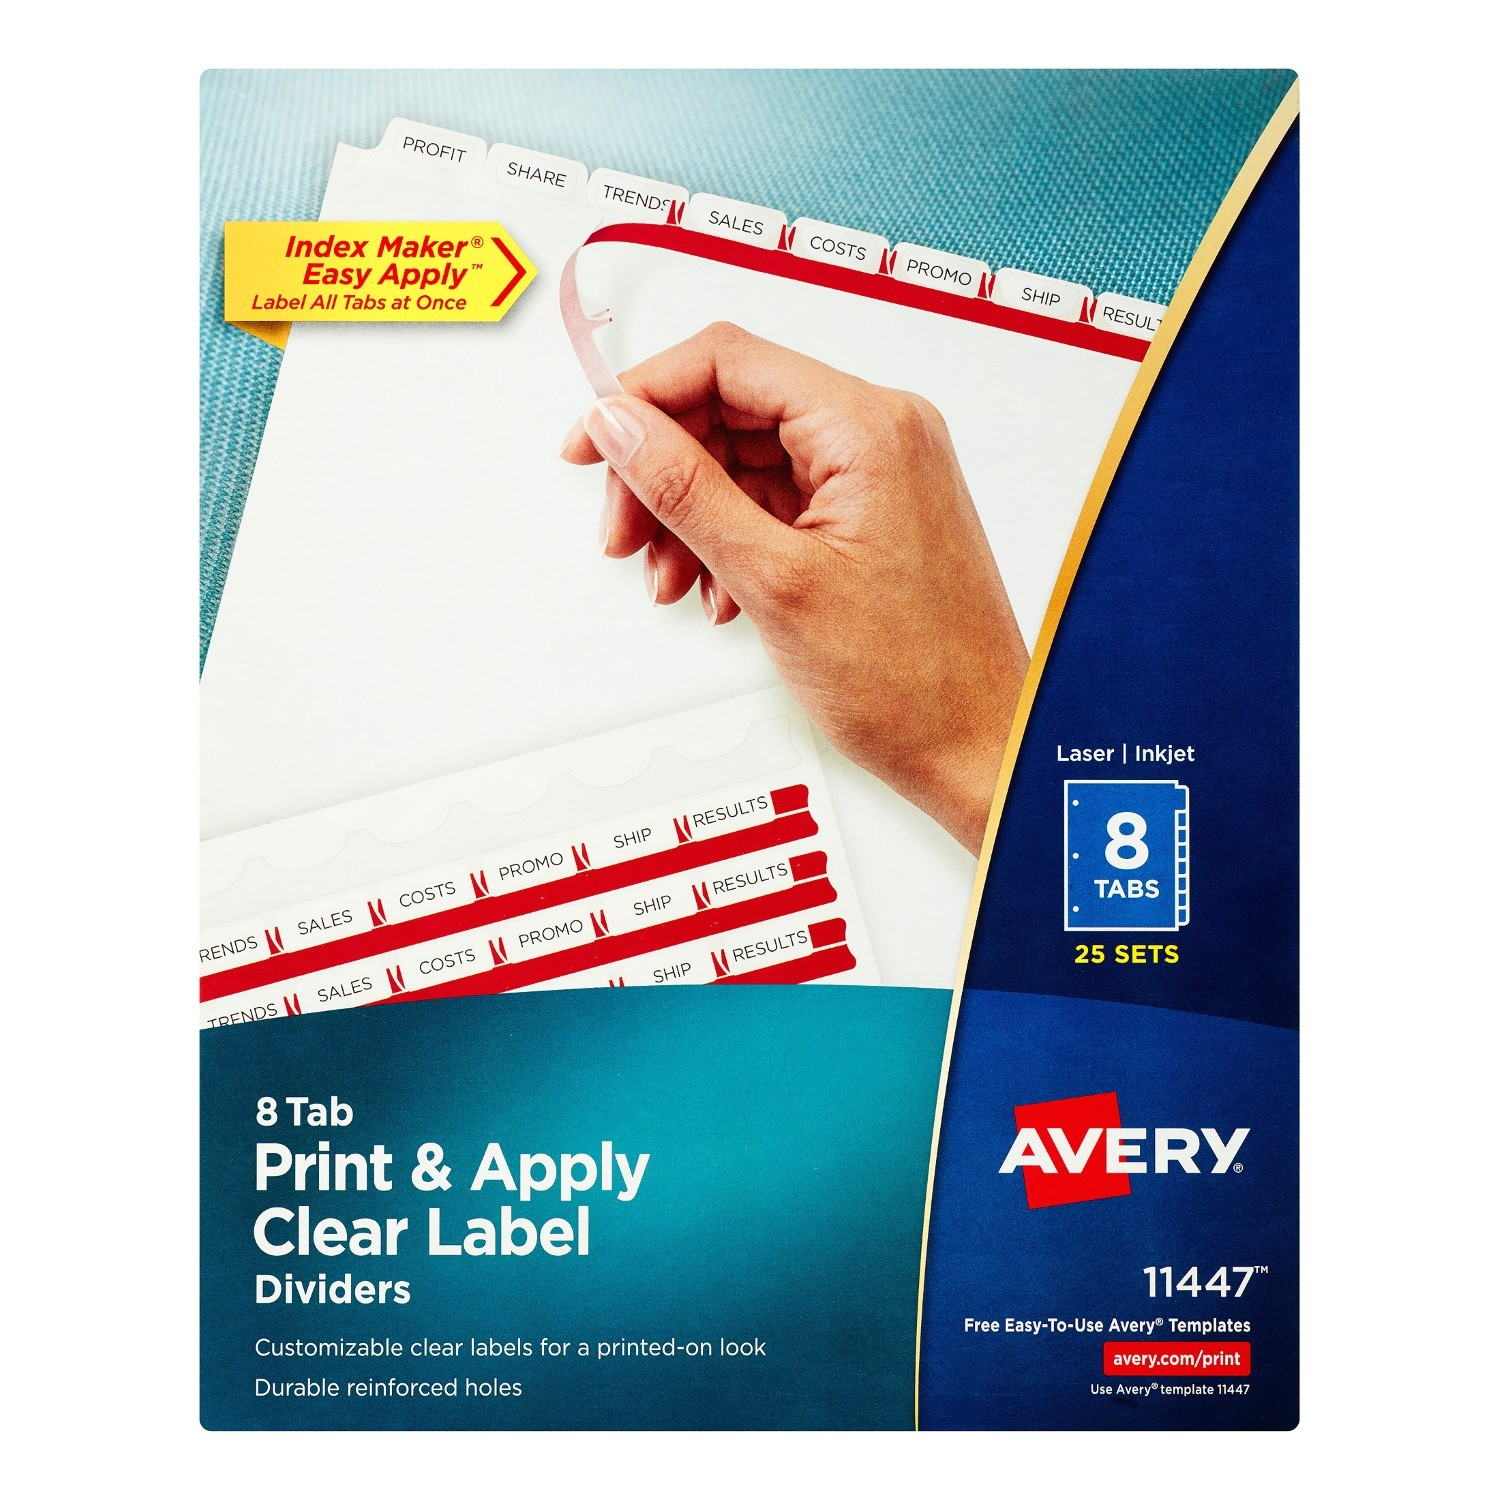 Avery 8 Tab Index Template 11447 Avery Index Maker Label Dividers White 8 Tabs Divider